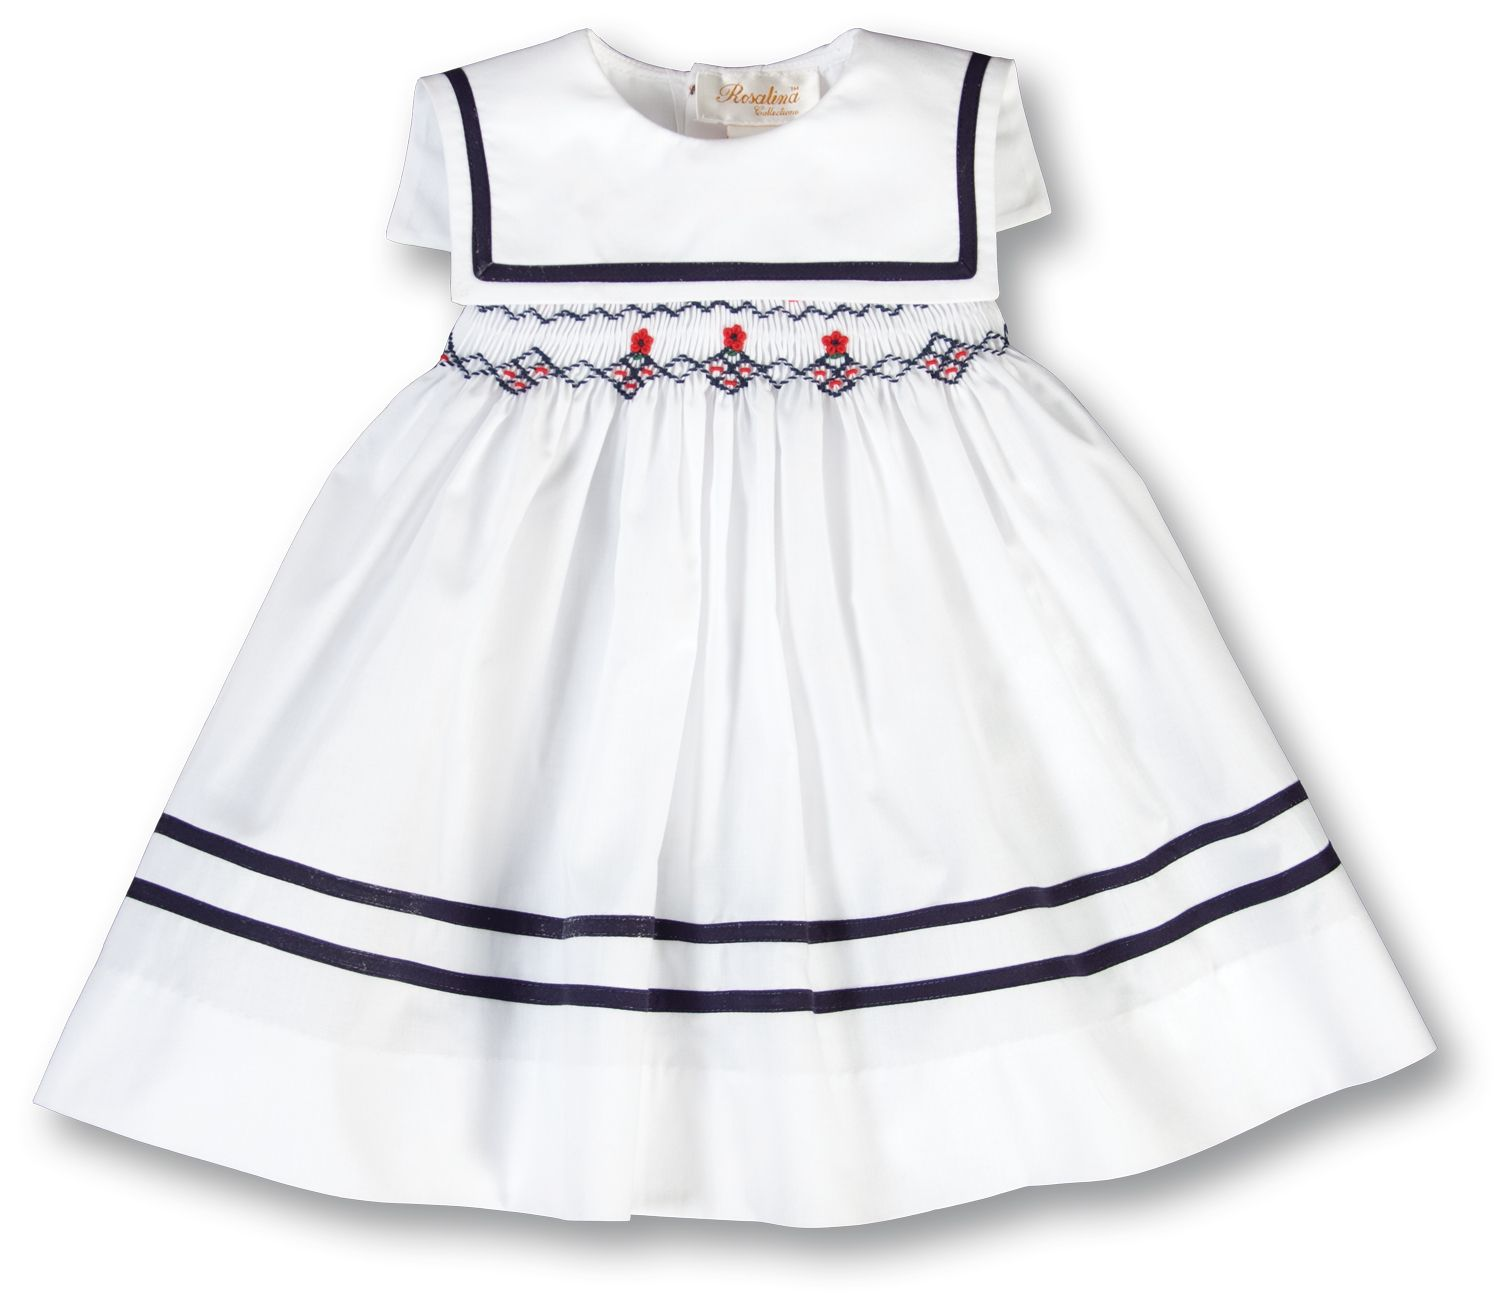 Ahoy red daisy white and navy smocked dress with square collar